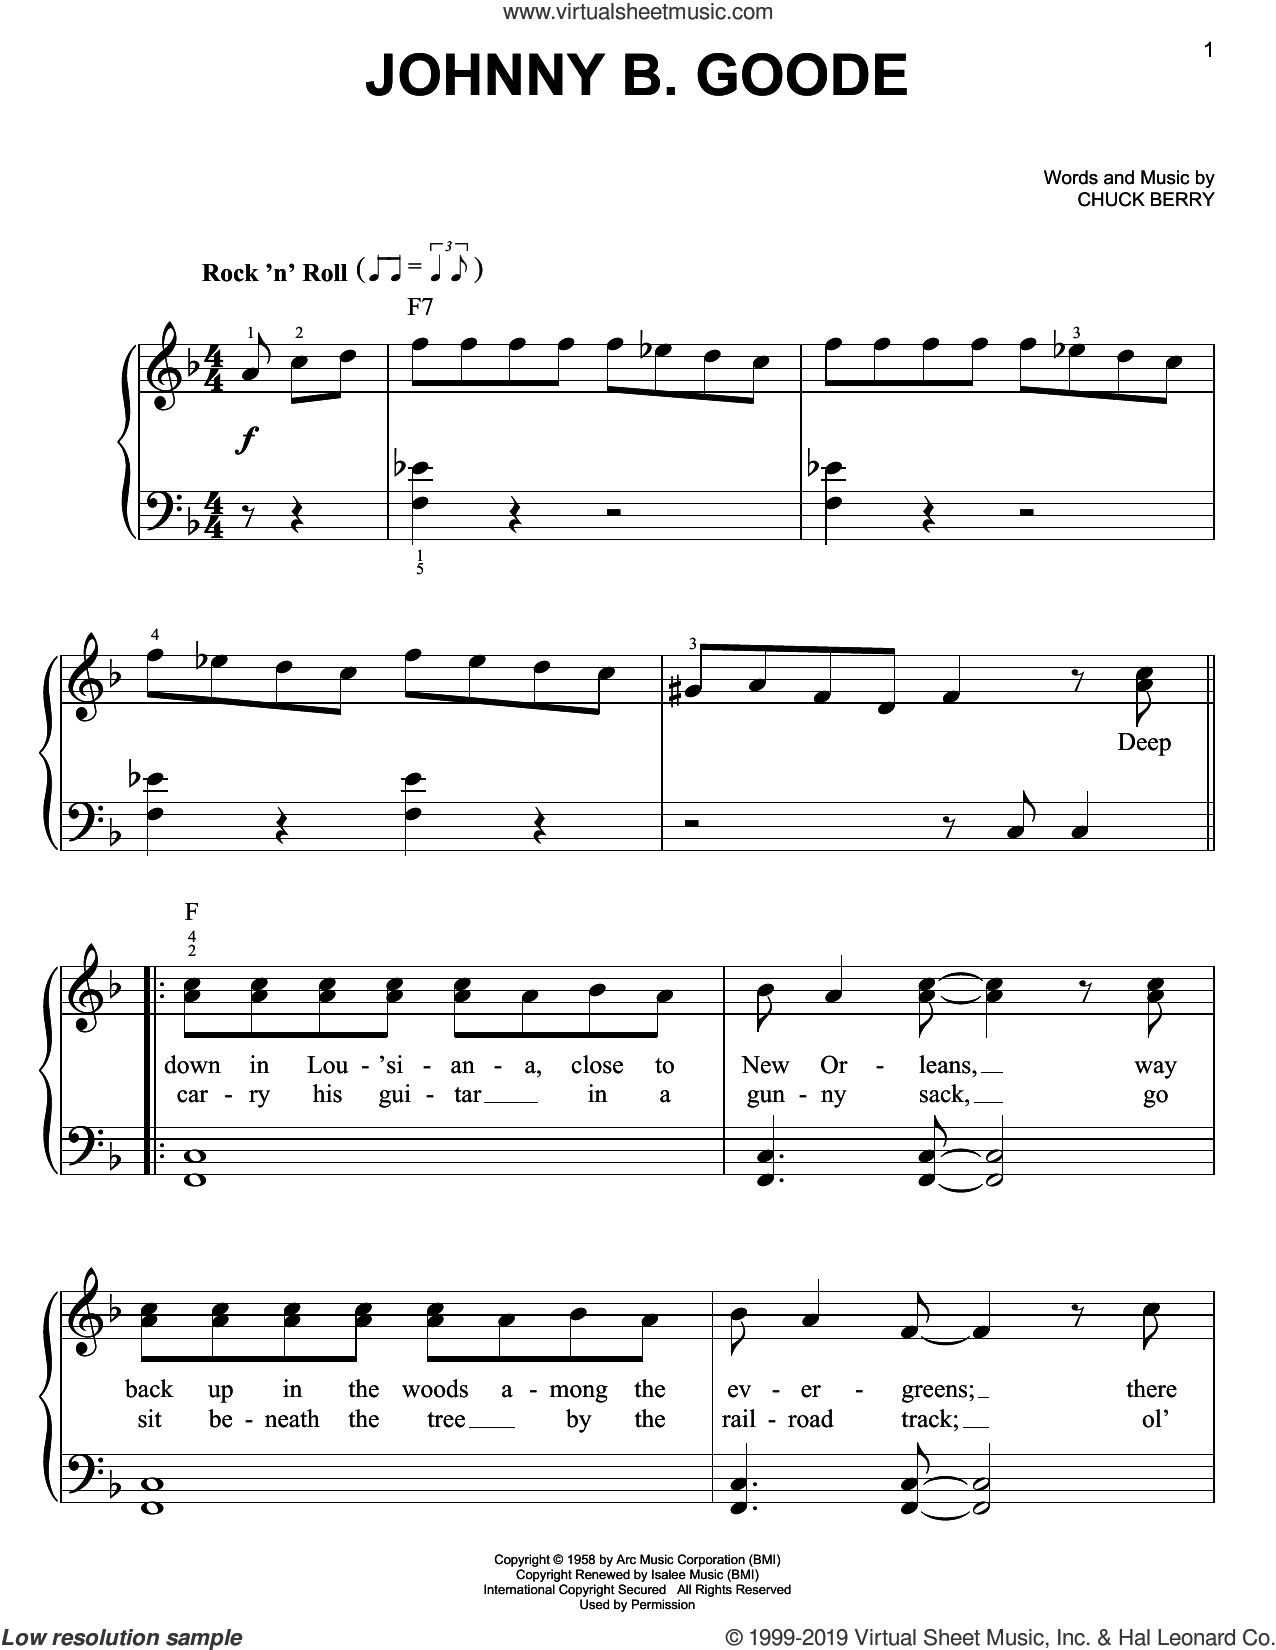 Johnny B. Goode sheet music for piano solo by Chuck Berry, easy skill level